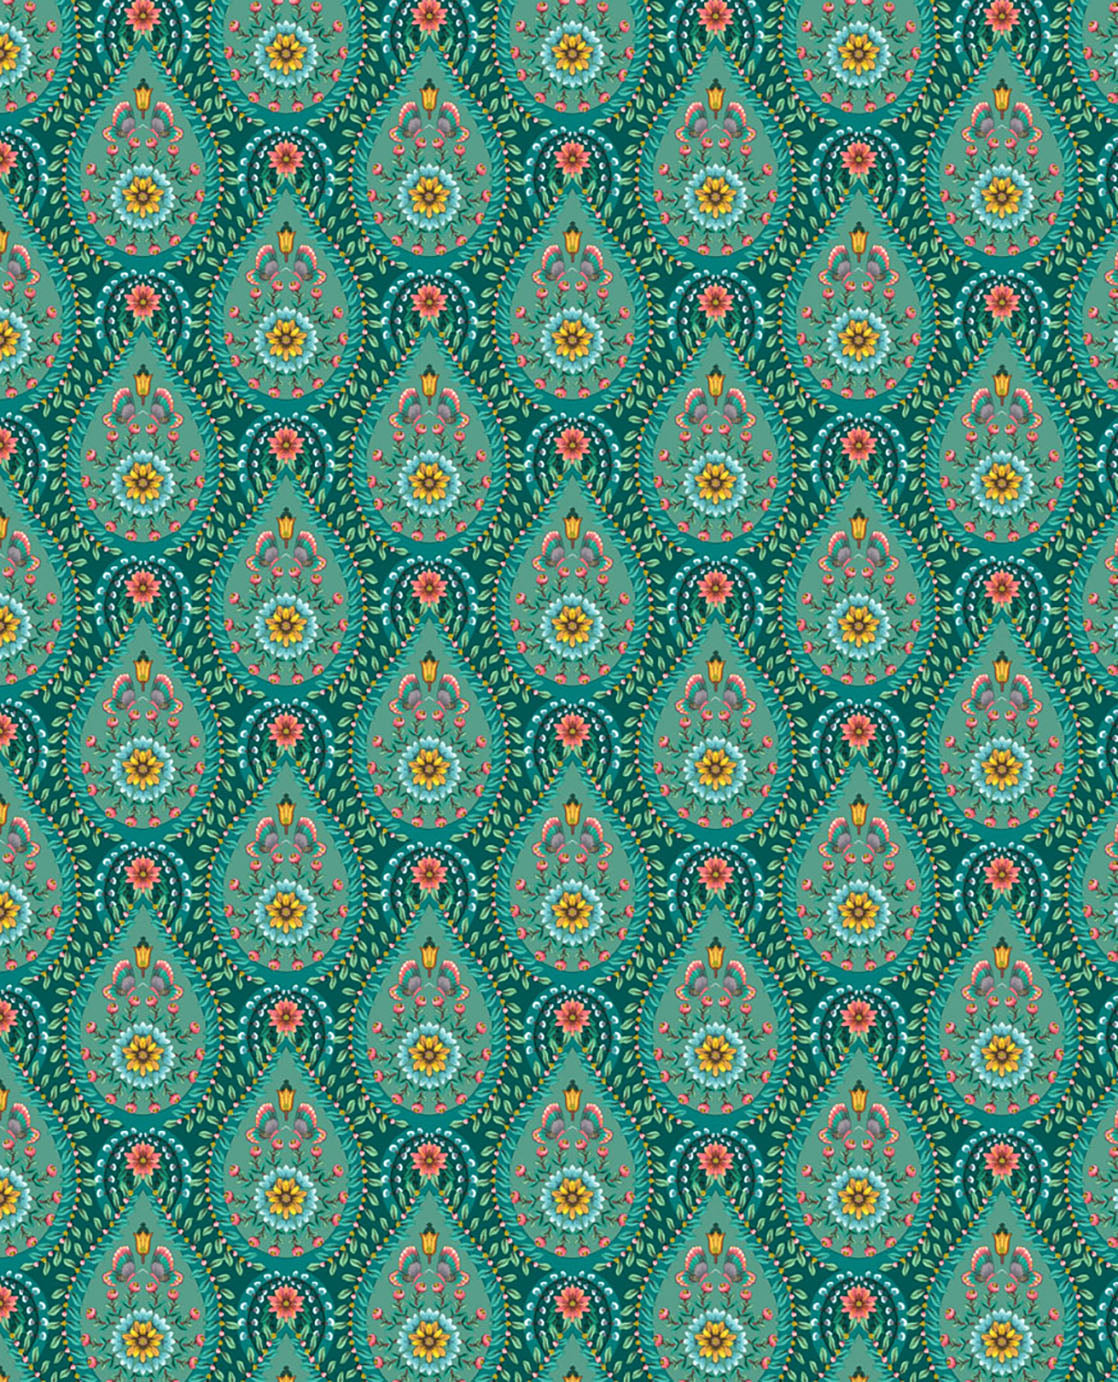 Pip Studio No 150 Wallpaper, Green / Multi Colour